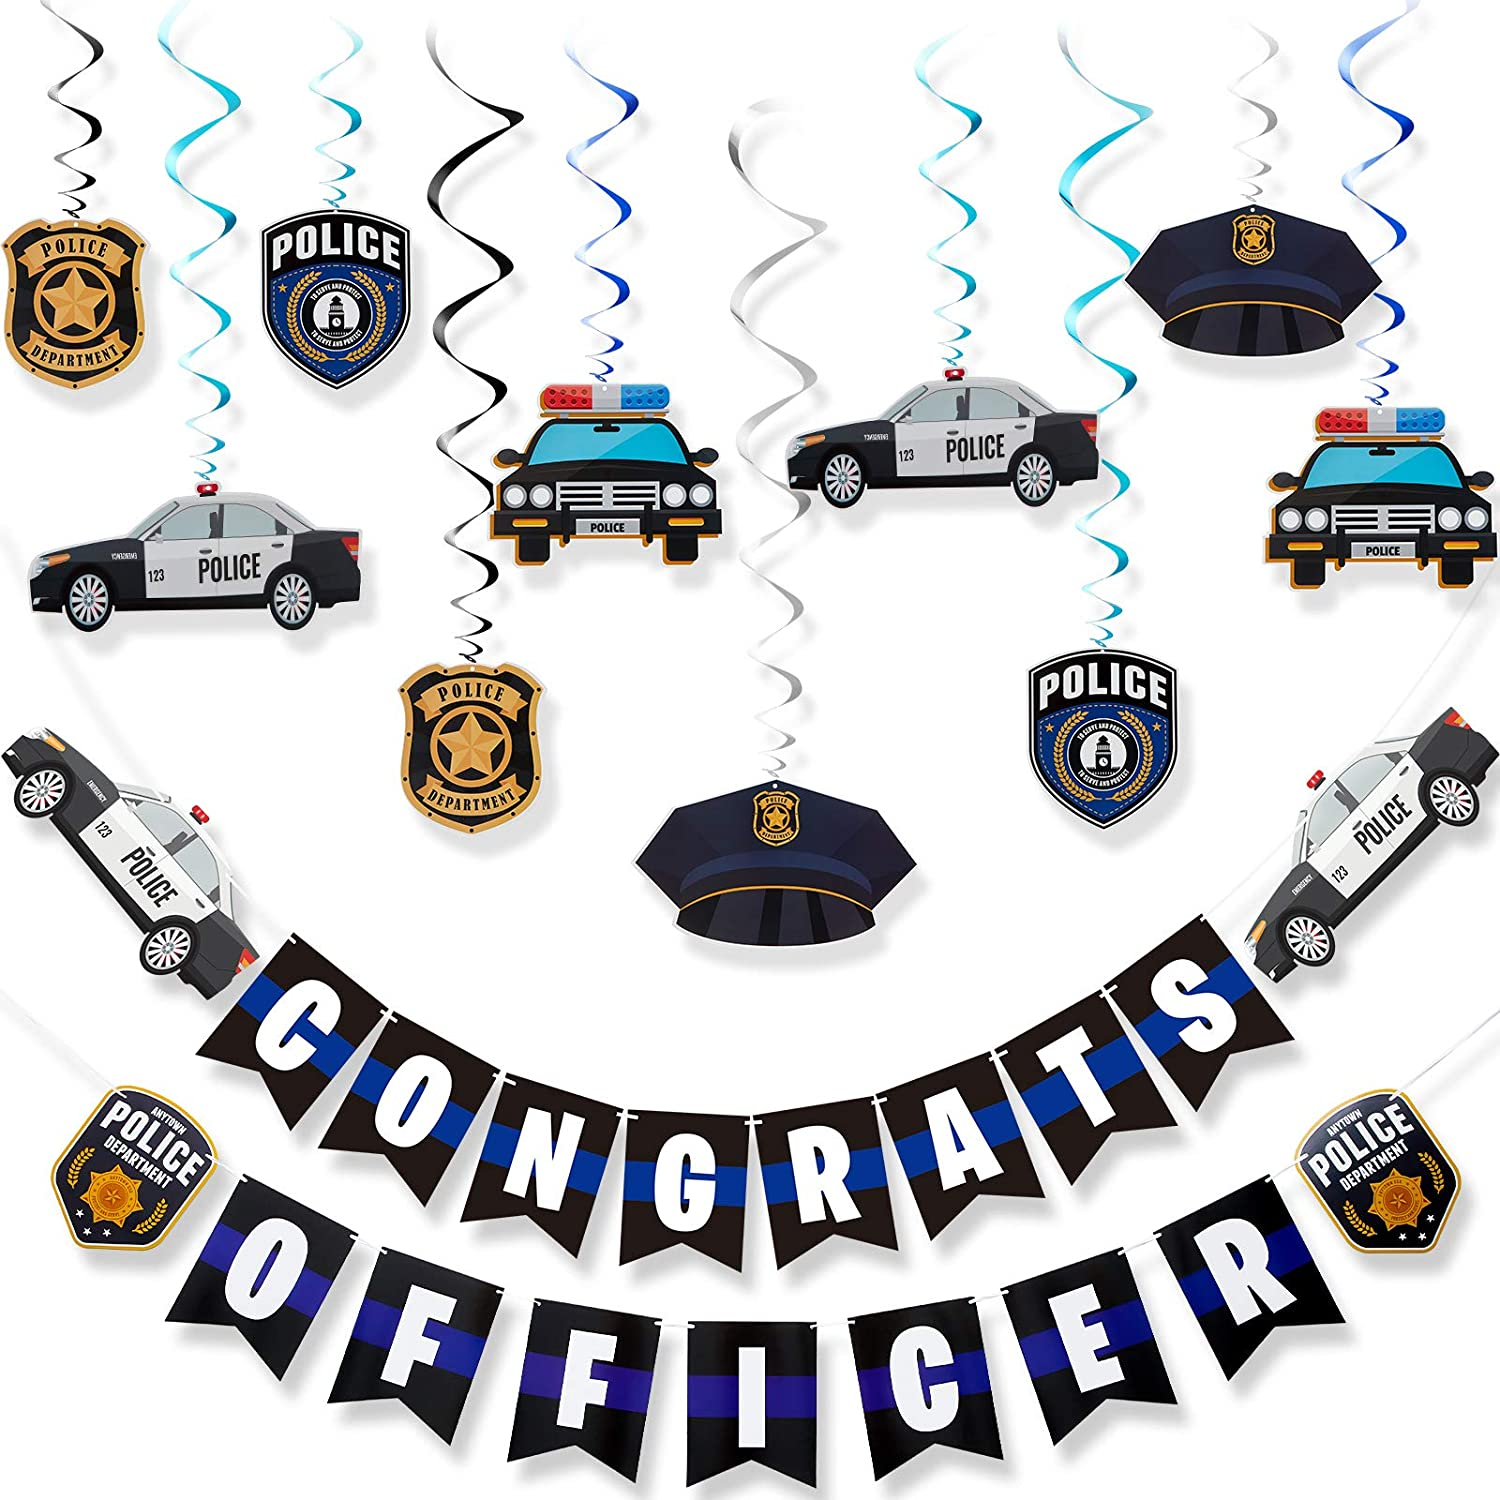 12 Pieces Police Party Hanging Swirls Max 84% OFF Jointed and At the price of surprise B